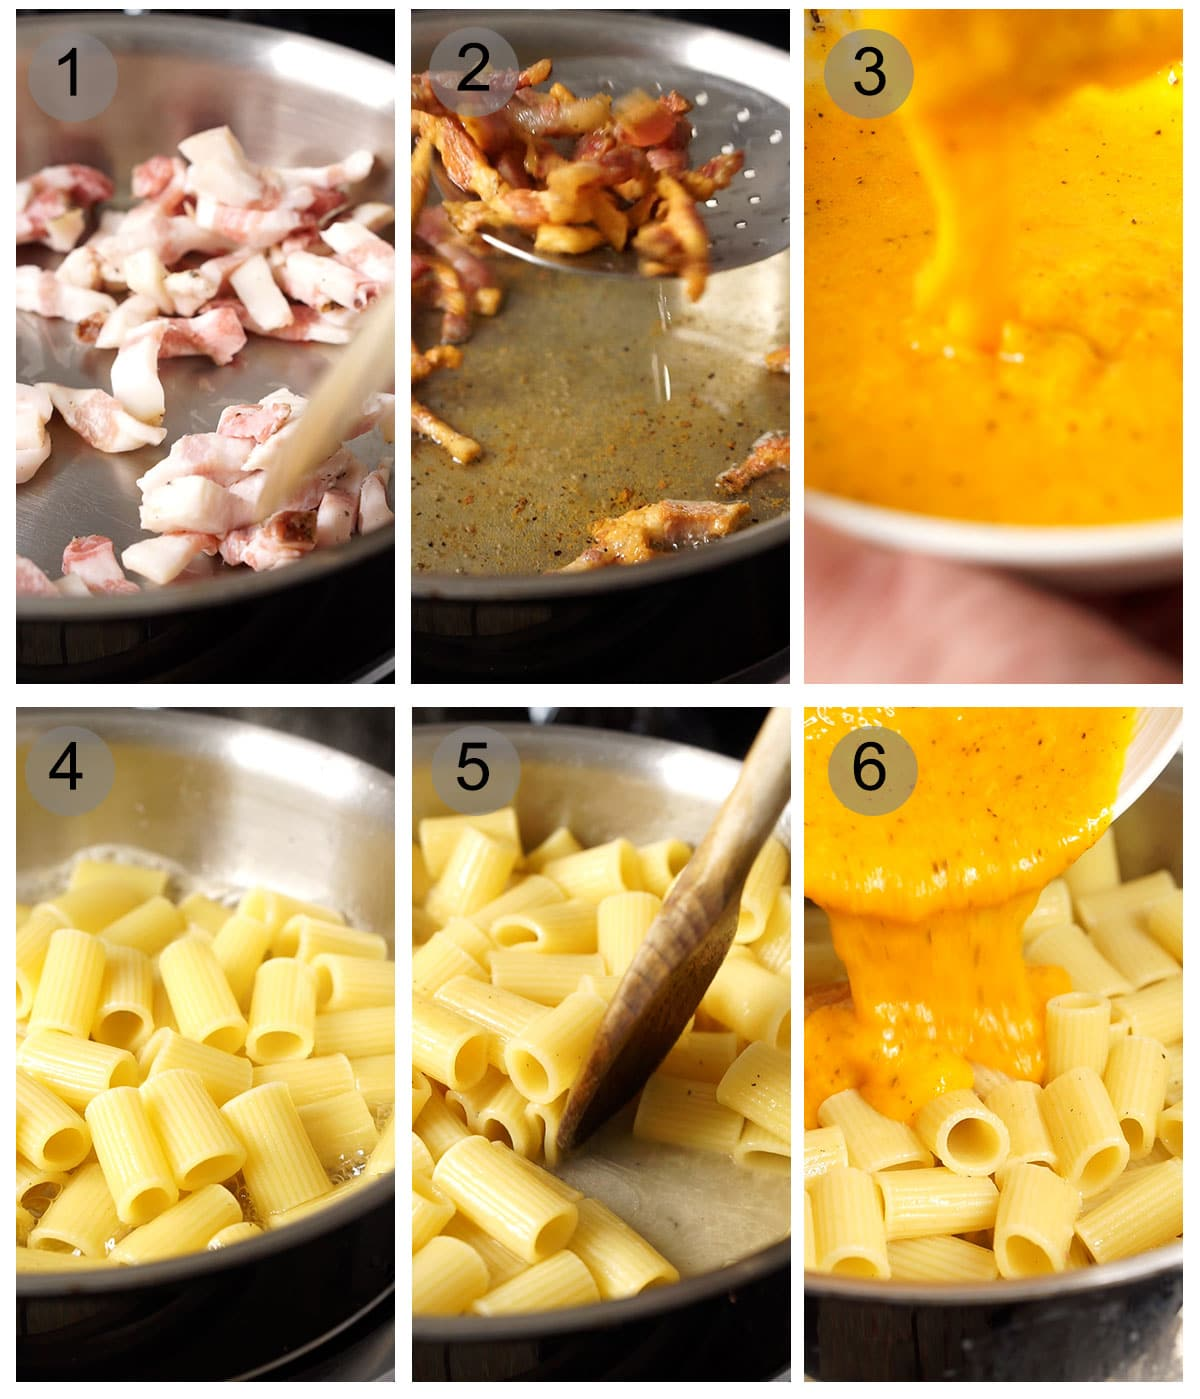 Step by step photos on how to make an authentic carbonara (#1-6)